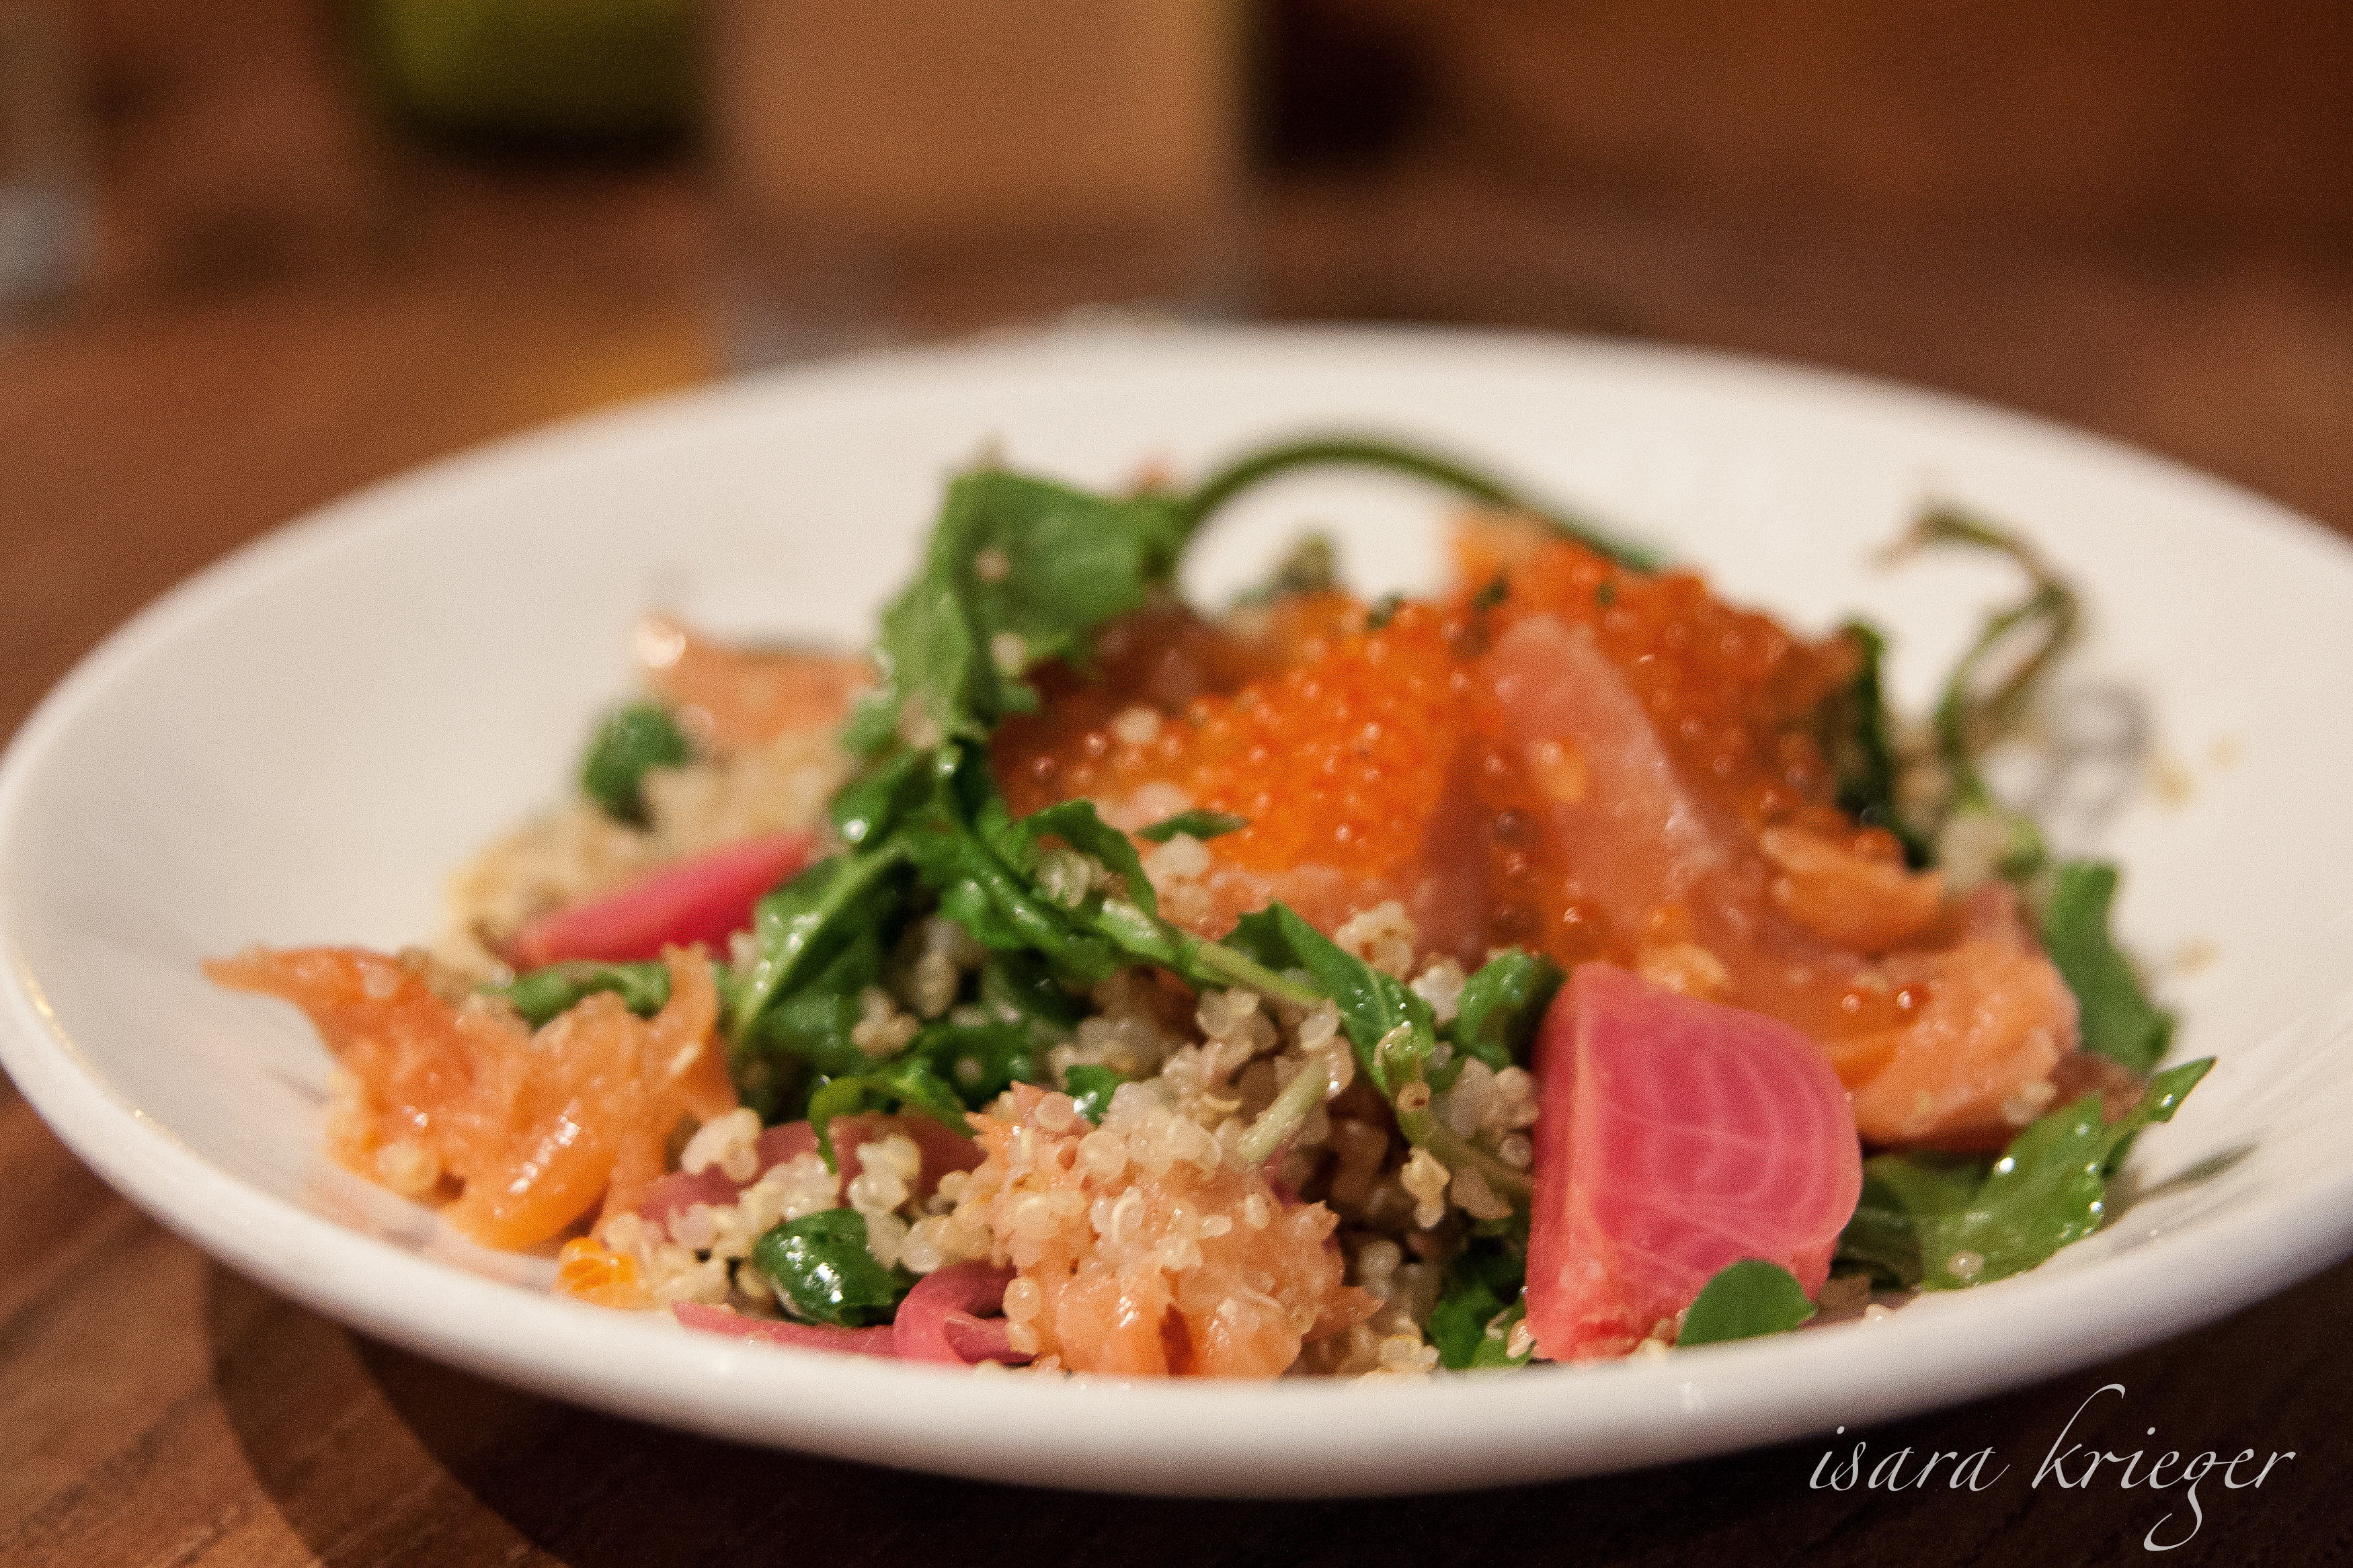 Toasted Quinoa, Smoked Trout, Hazelnuts, Snow Peas and Cara Cara Orange, $15.